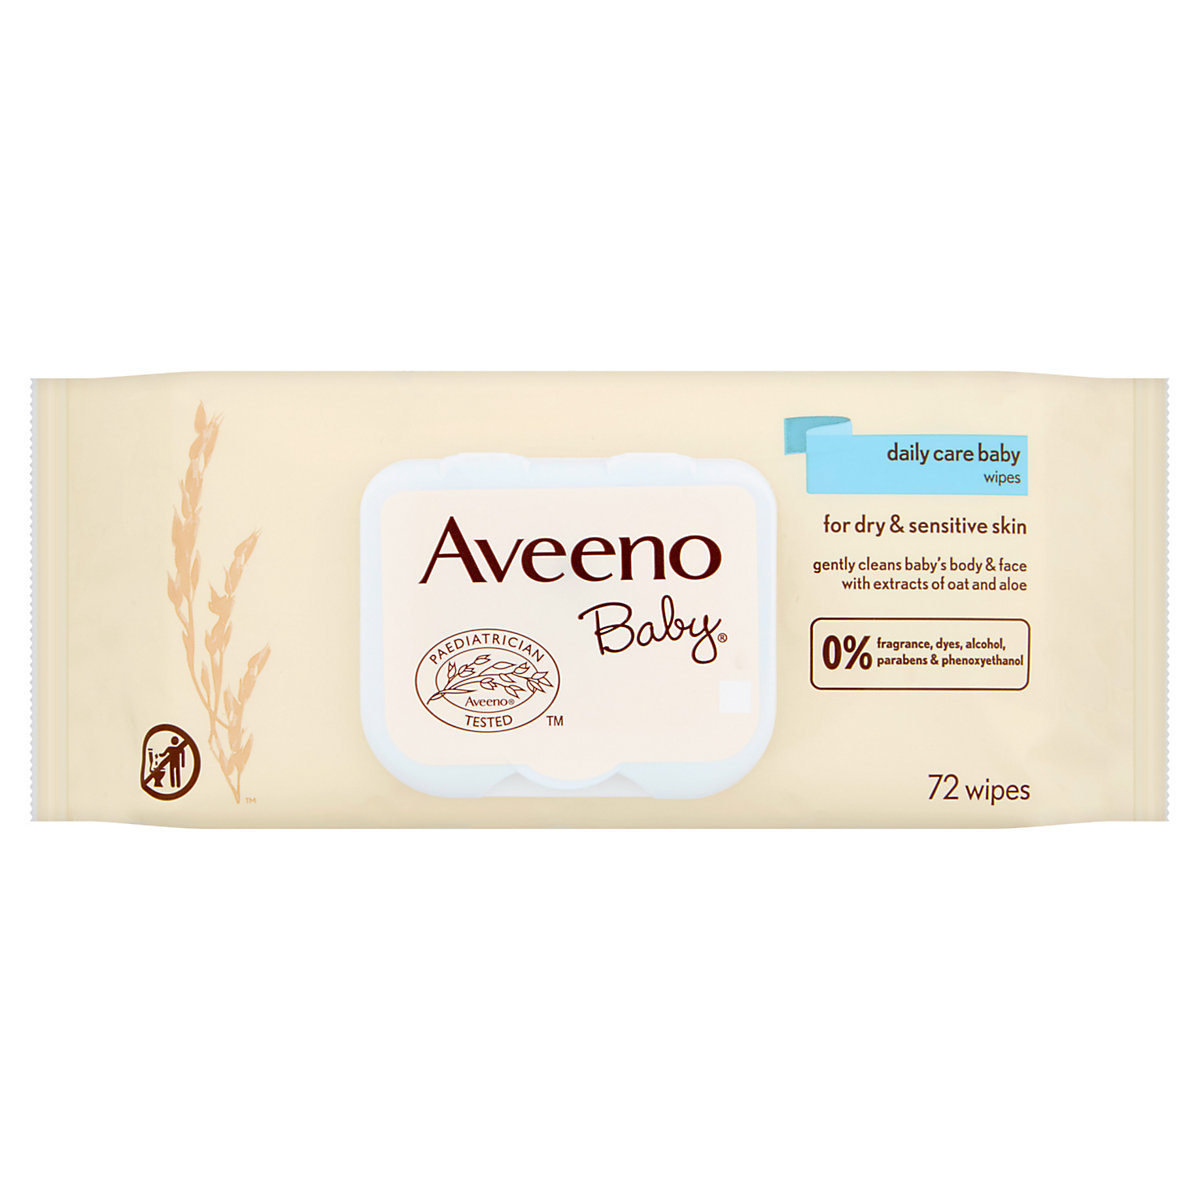 Aveeno daily care wipes - single pack